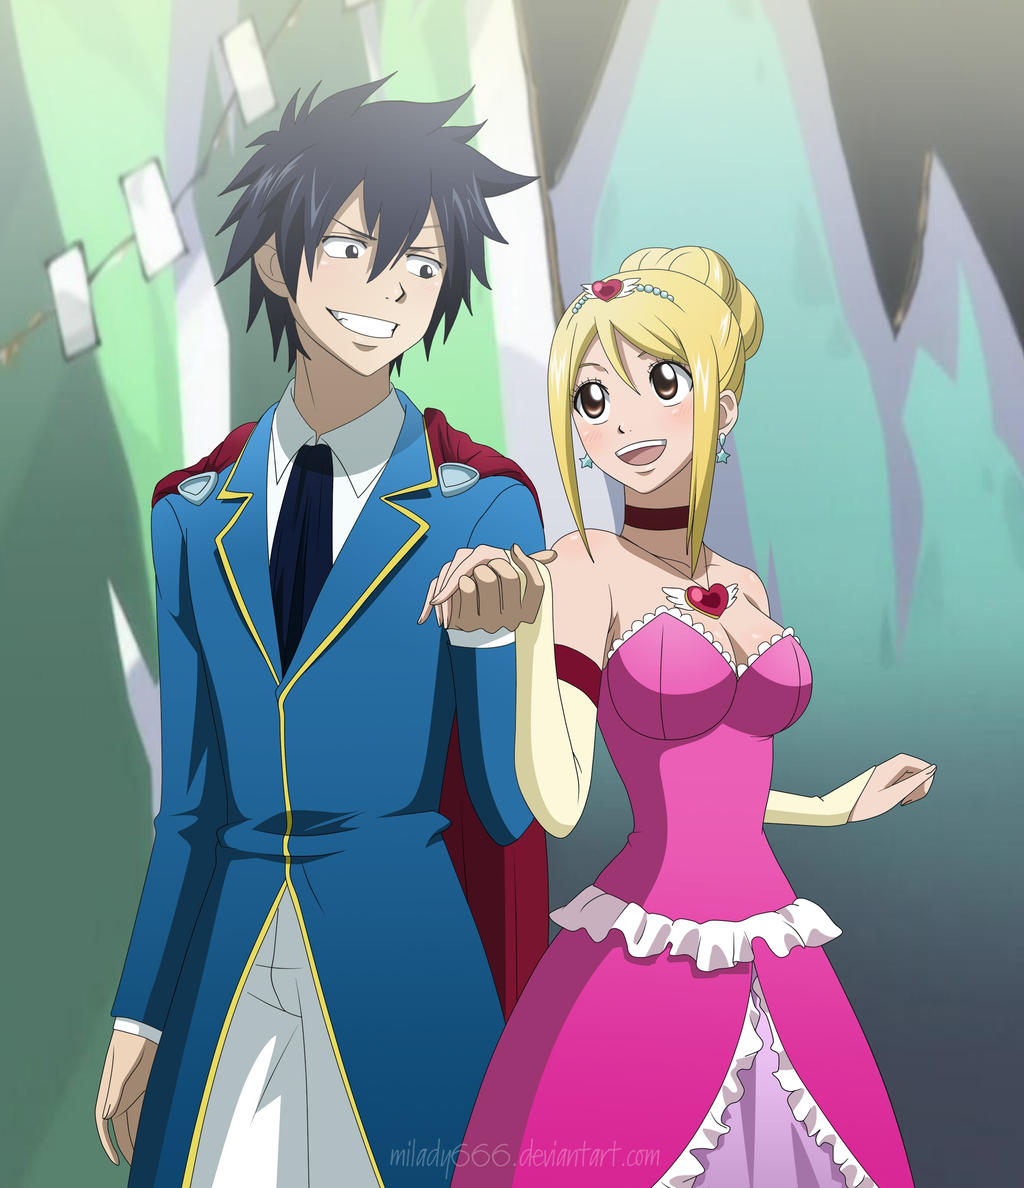 Gray and Lucy by Milady666 on DeviantArt